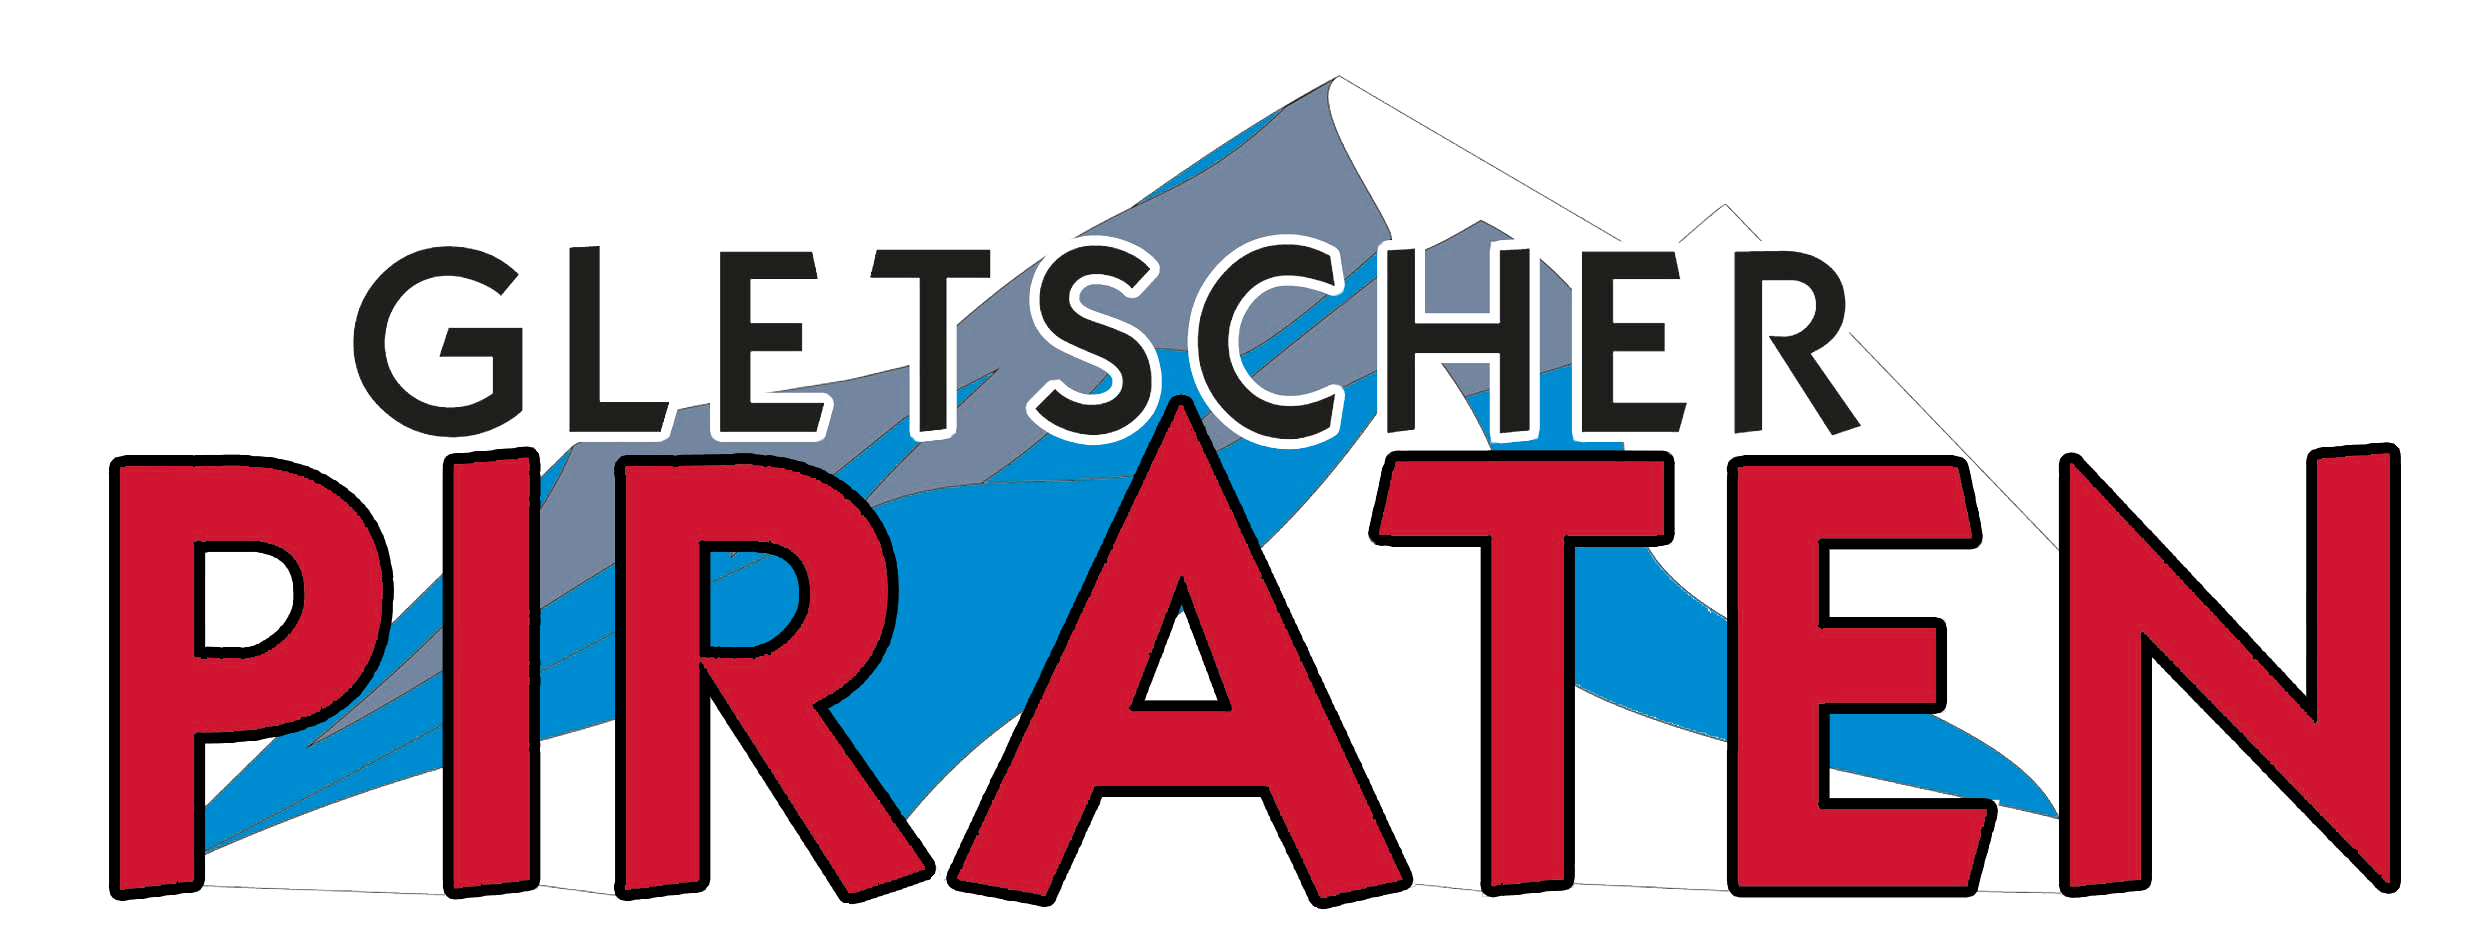 gletscherpiraten